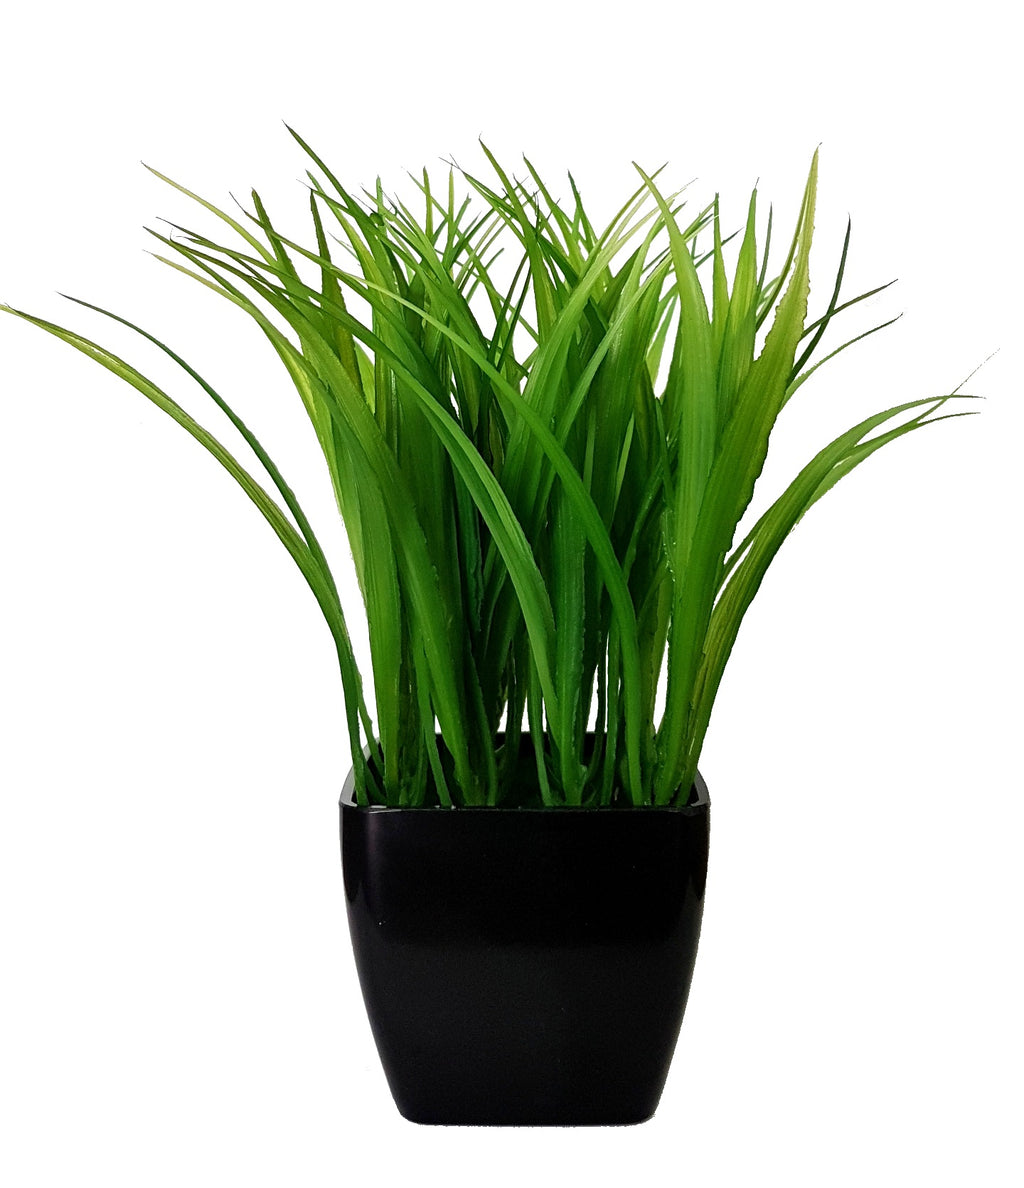 Potted Grass (Height: 25cm) - AL14G013